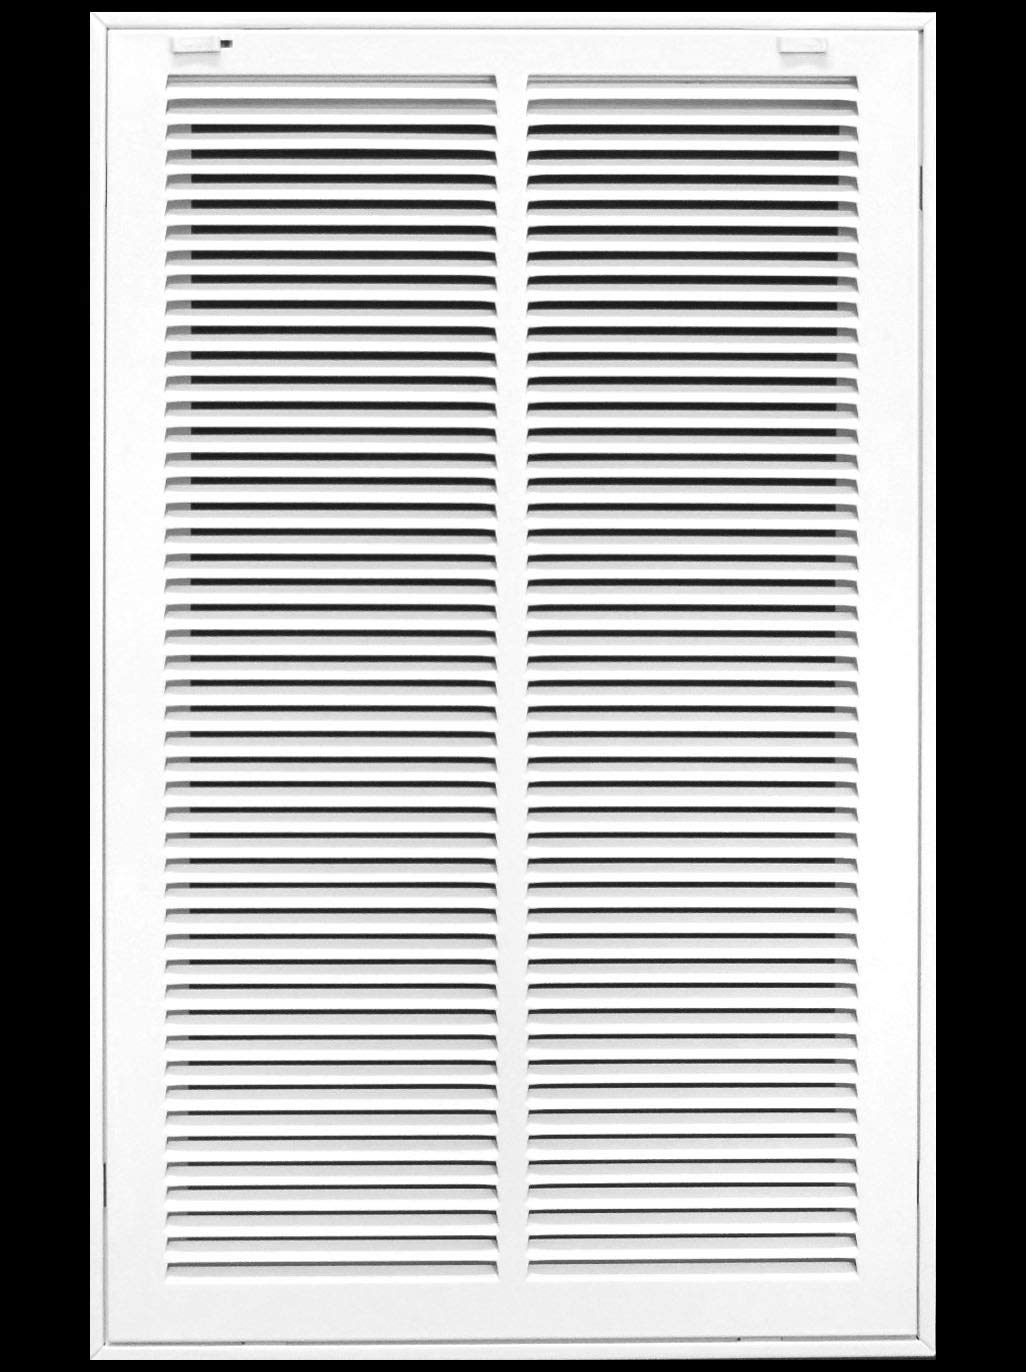 "14"" X 24 Steel Return Air Filter Grille for 1"" Filter - Removable Face/Door - HVAC Duct Cover - Flat Stamped Face - White [Outer Dimensions: 16.5 X 25.75]"